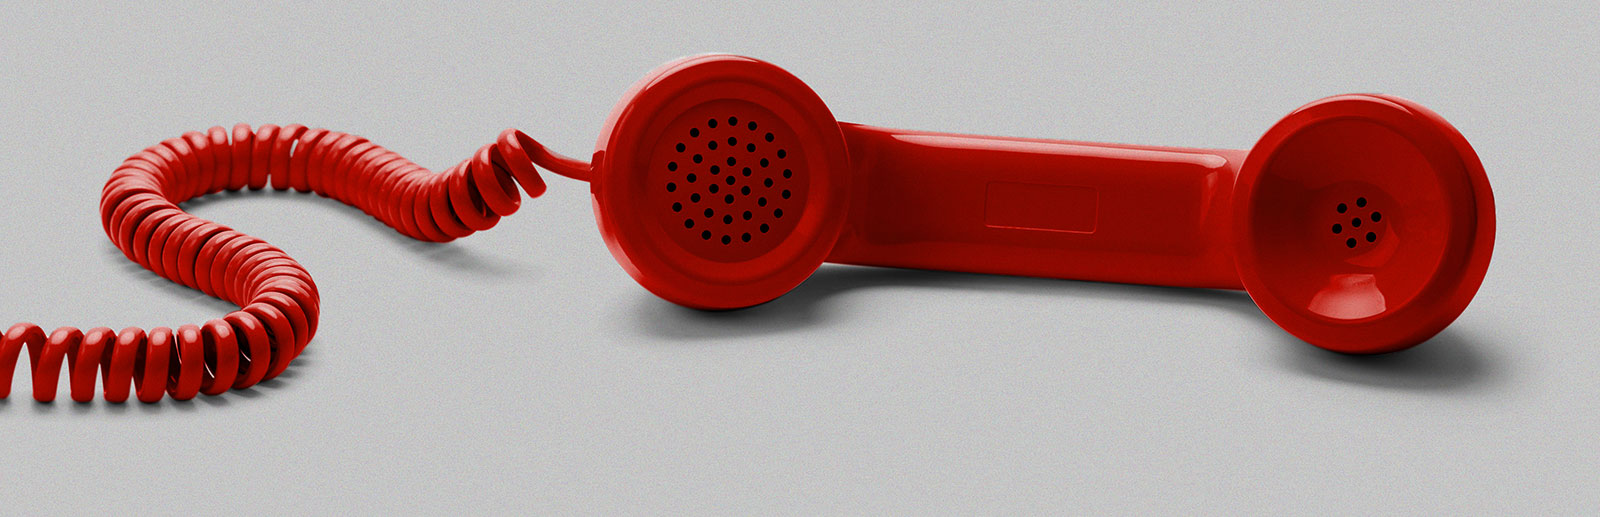 Red, old-style phone handset and cord, against a gray background